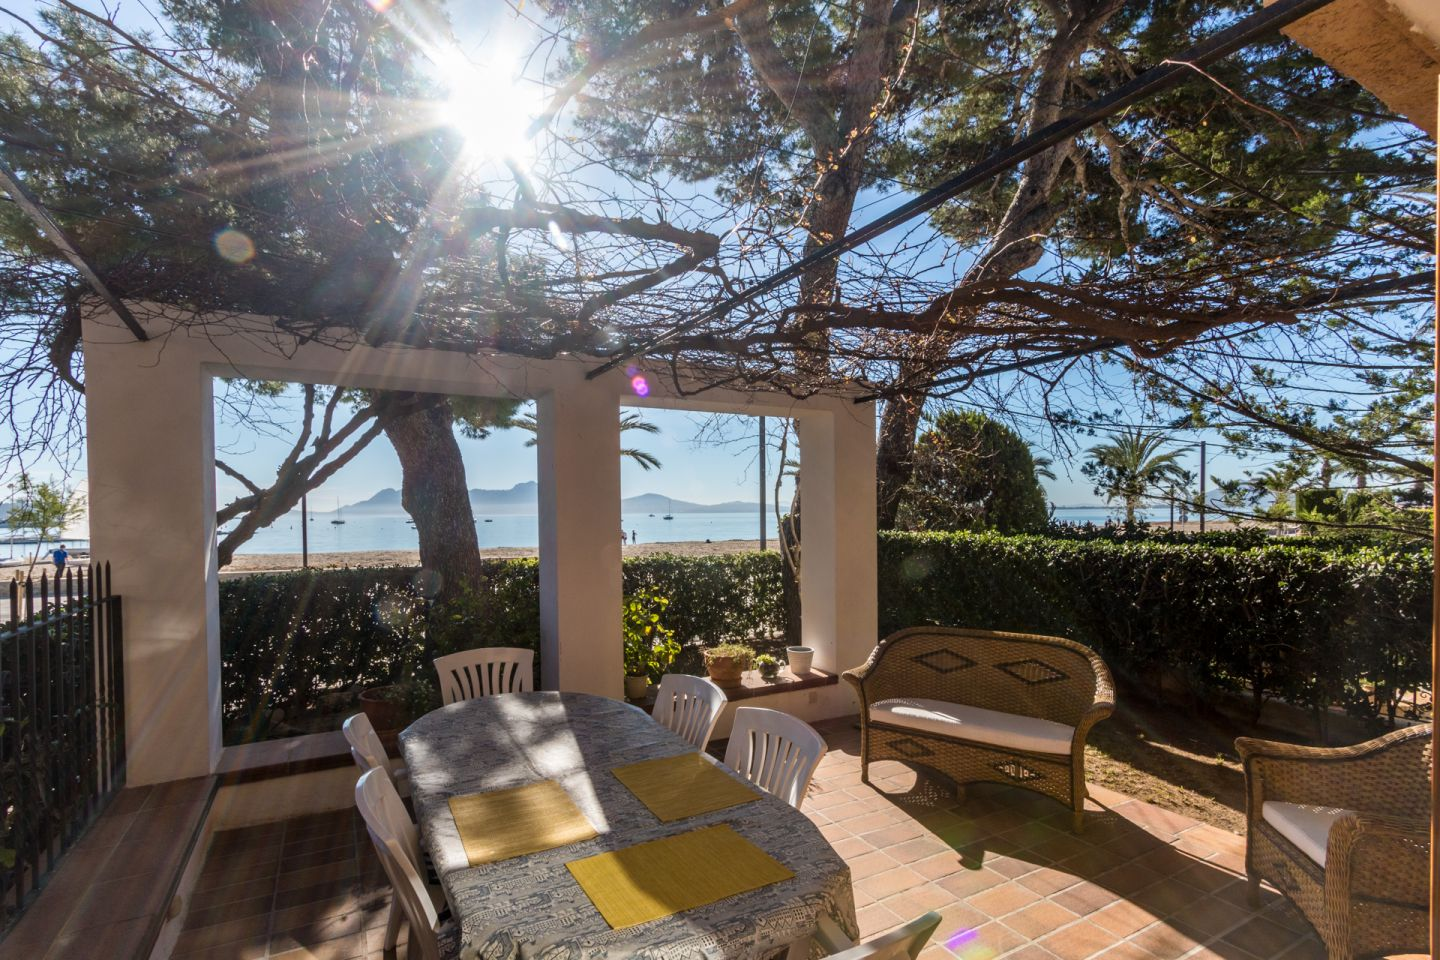 3 Bed Ground Floor For Sale in PUERTO POLLENSA 7